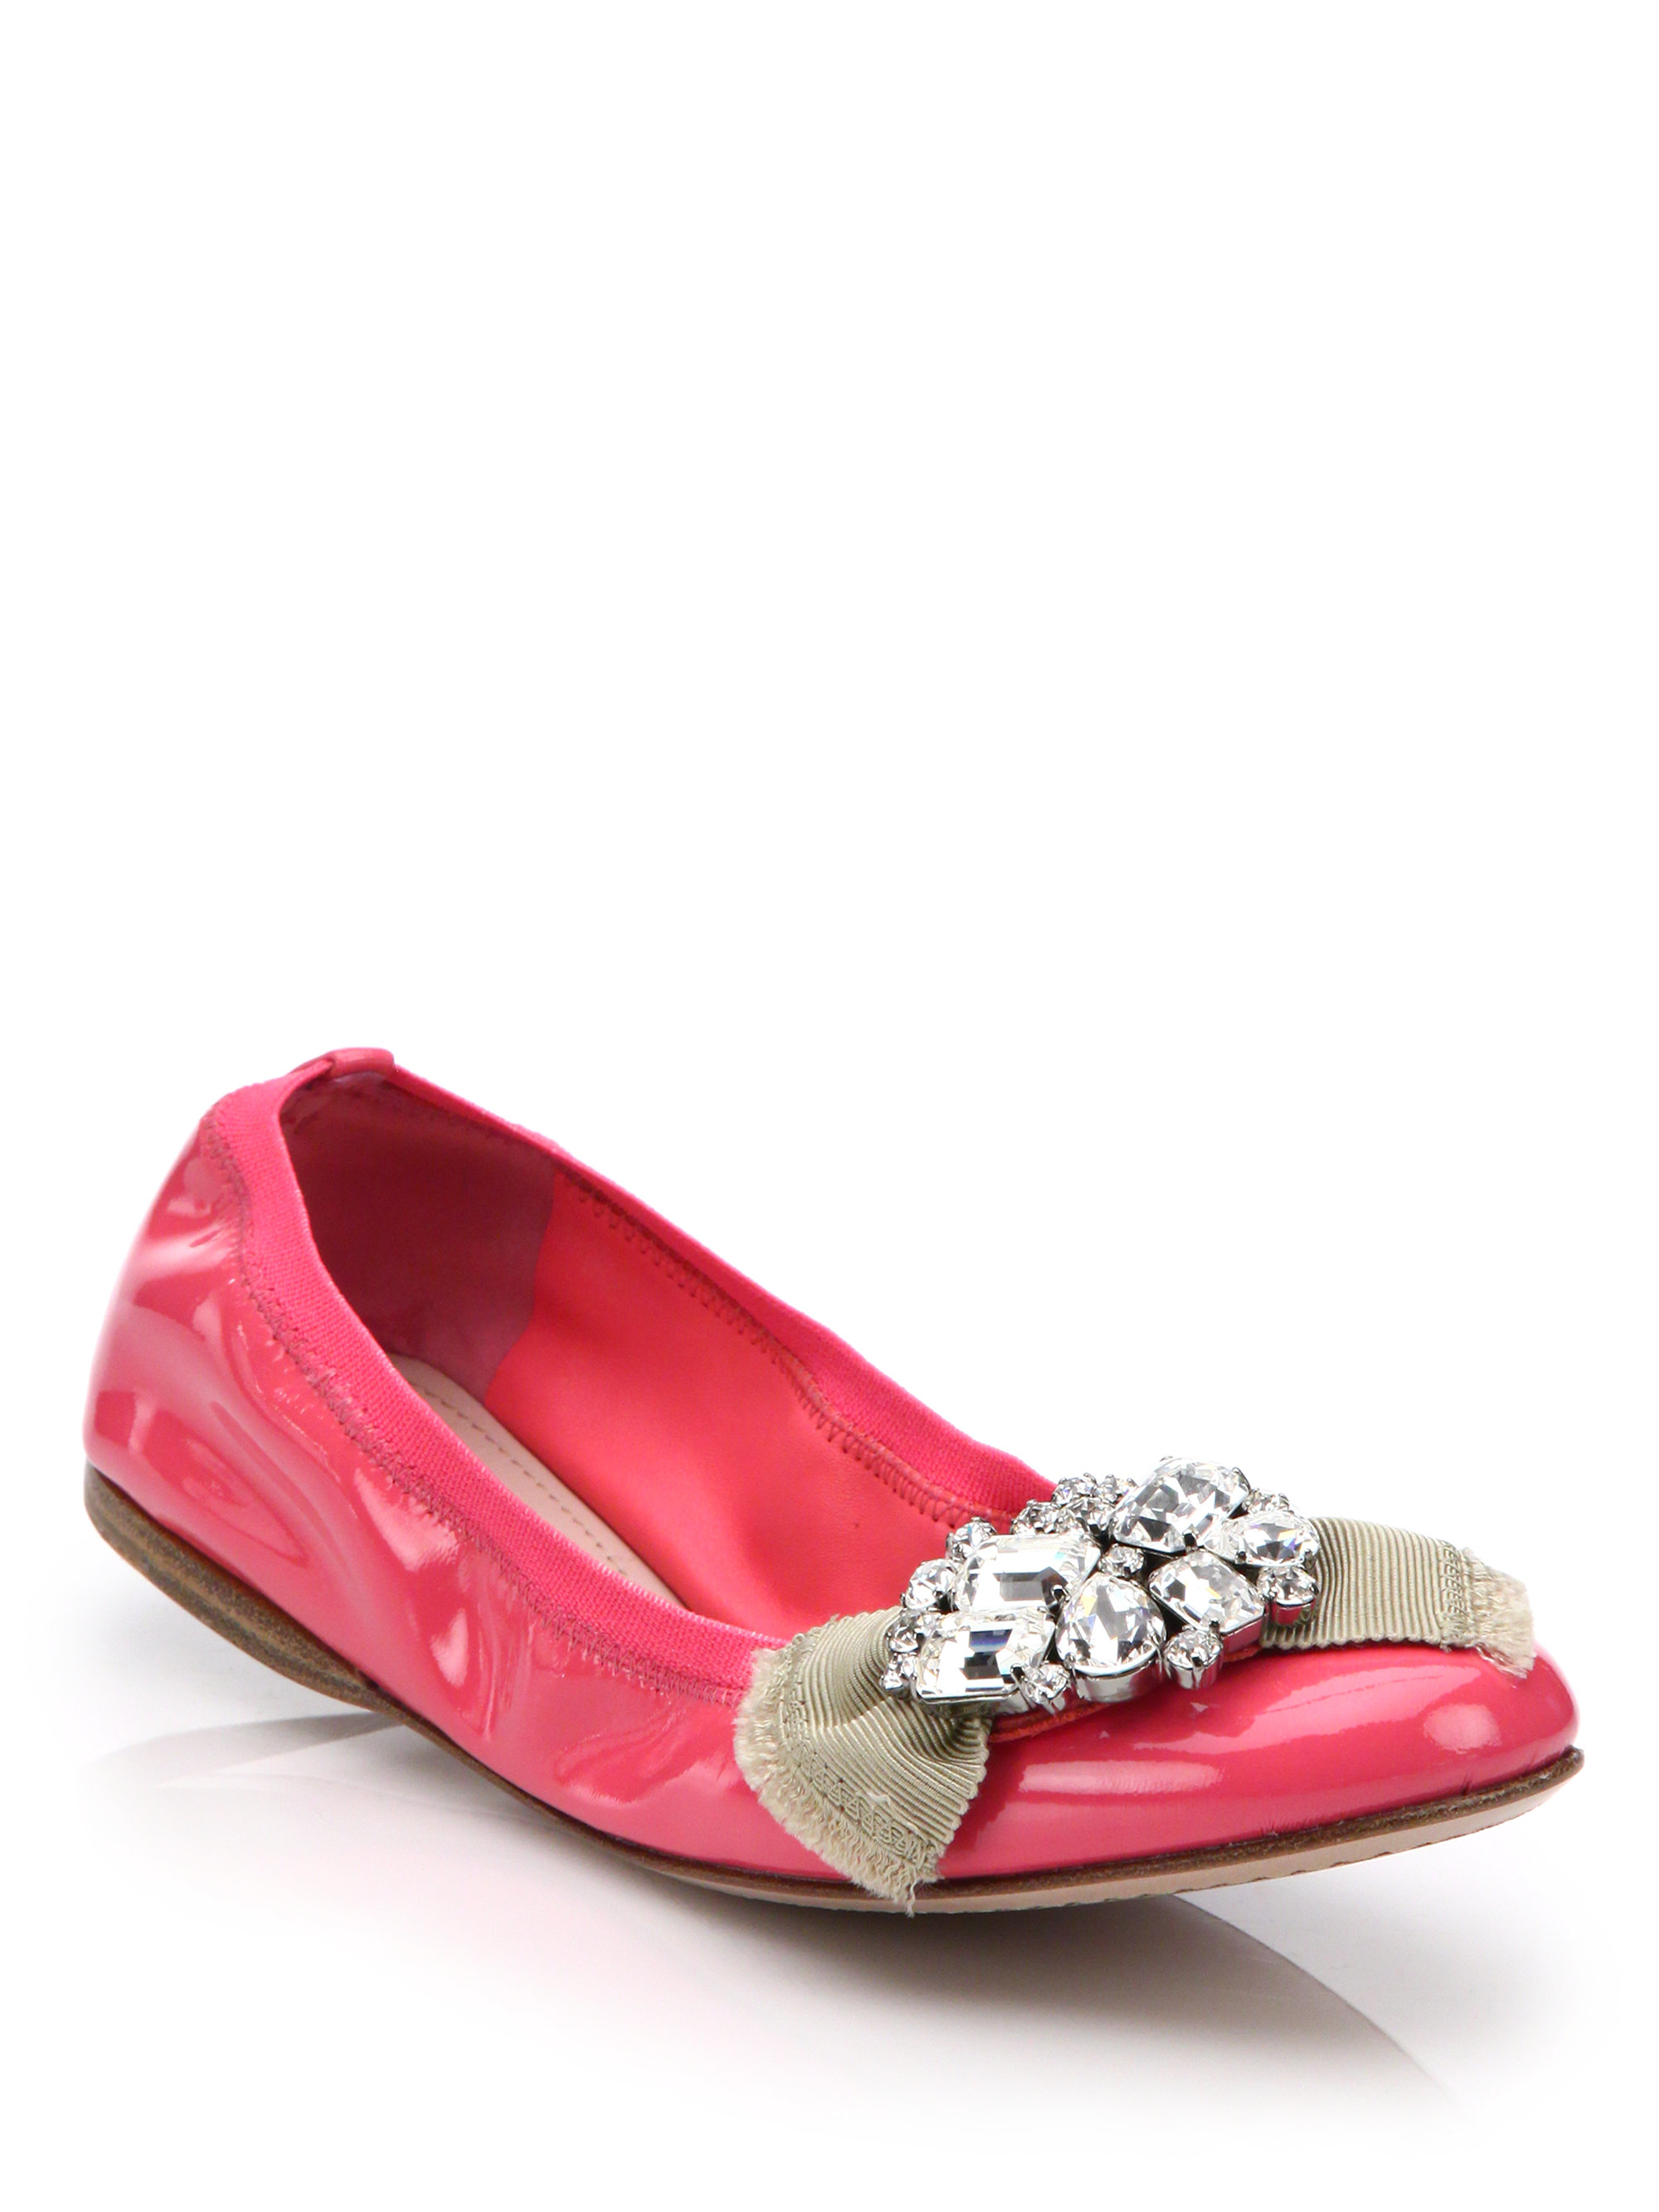 838261d08fef7 Miu Miu Embellished Patent-Leather Ballet Flats in Pink - Lyst